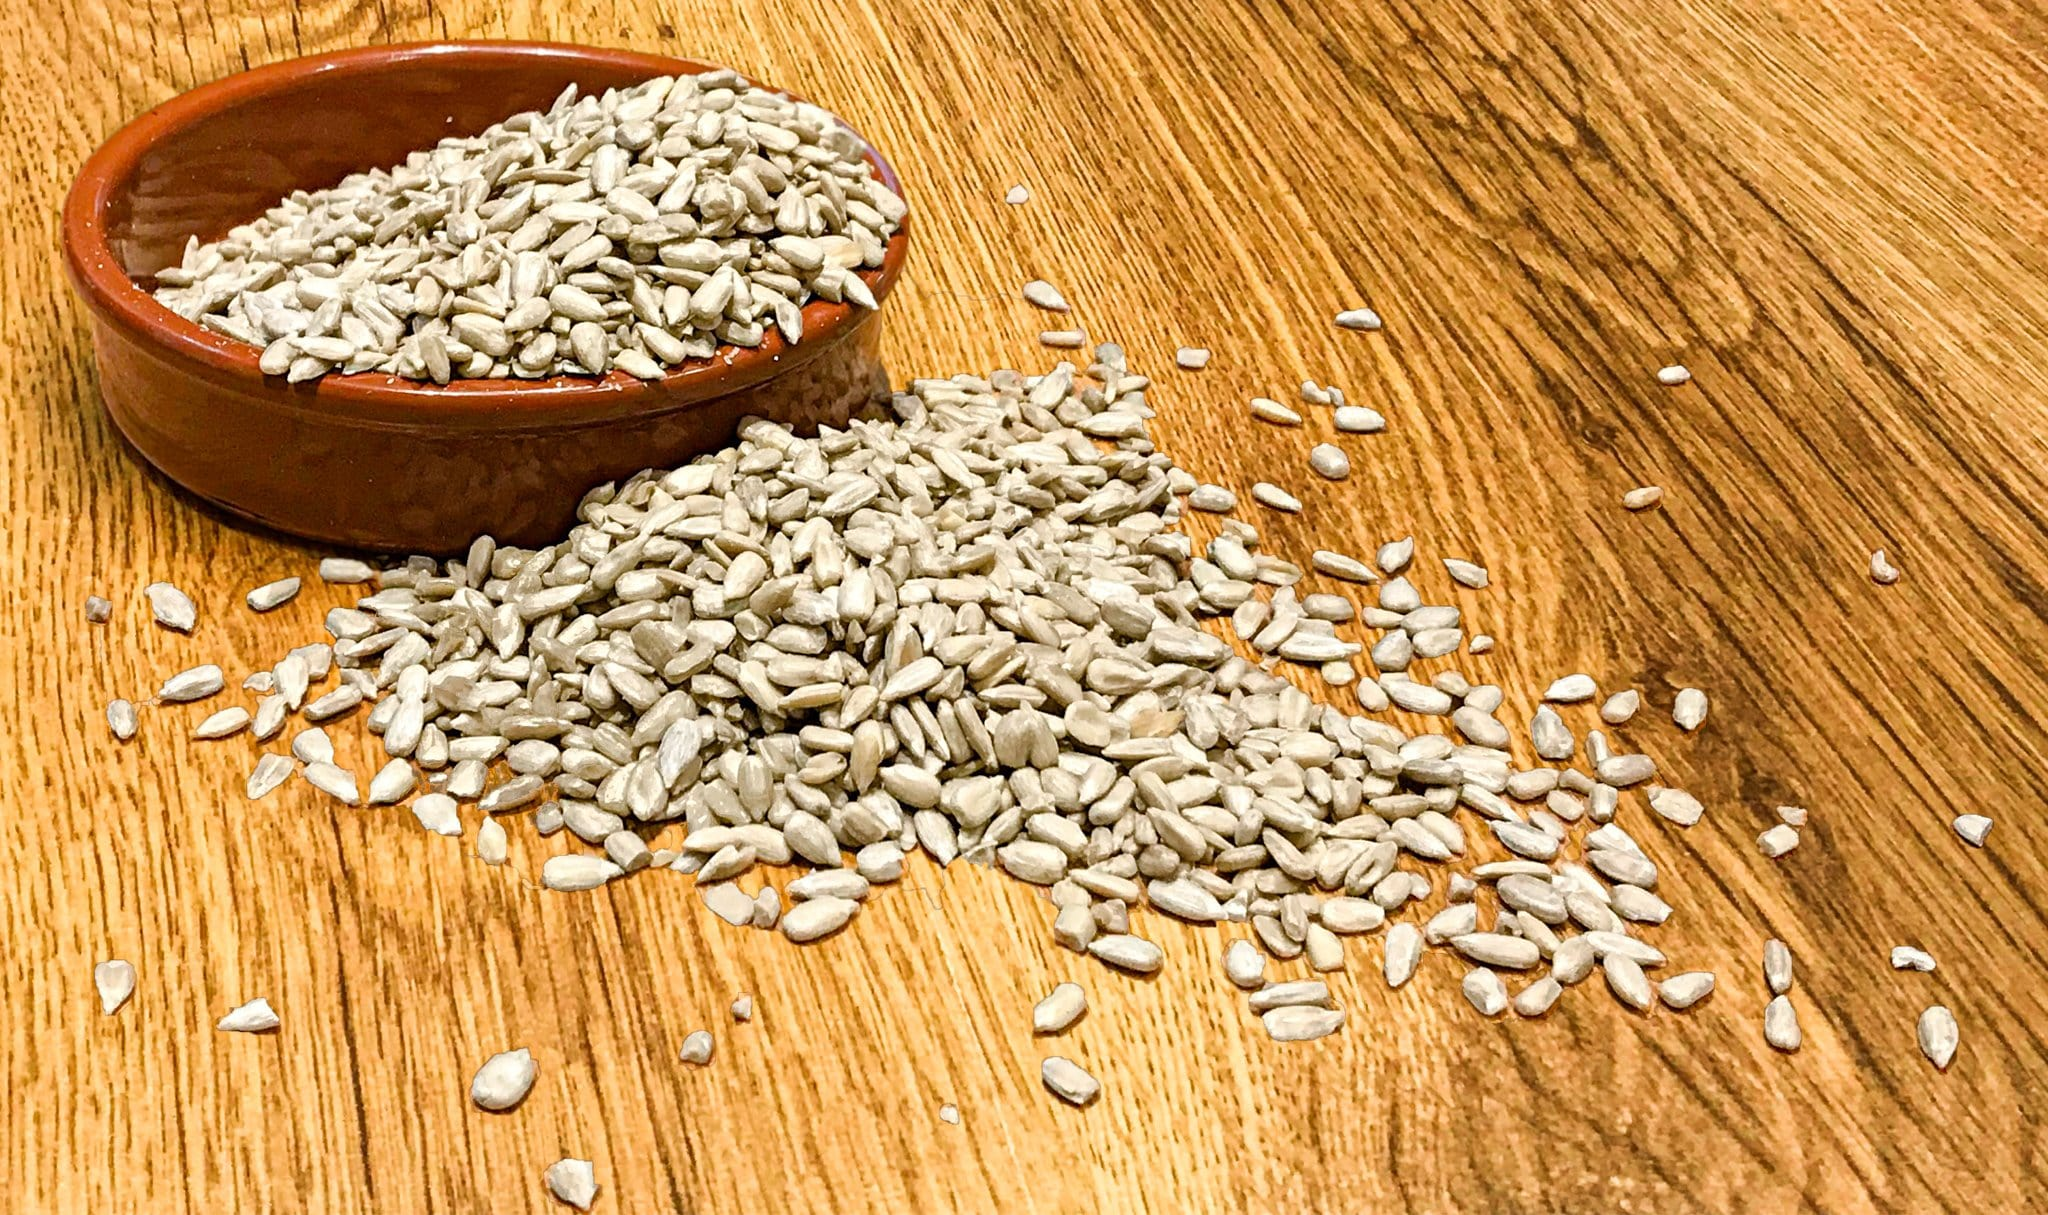 sunflower seeds seed Raw nuts whole foods wholefoods health foods vegan plant based vegetarian diet superfood